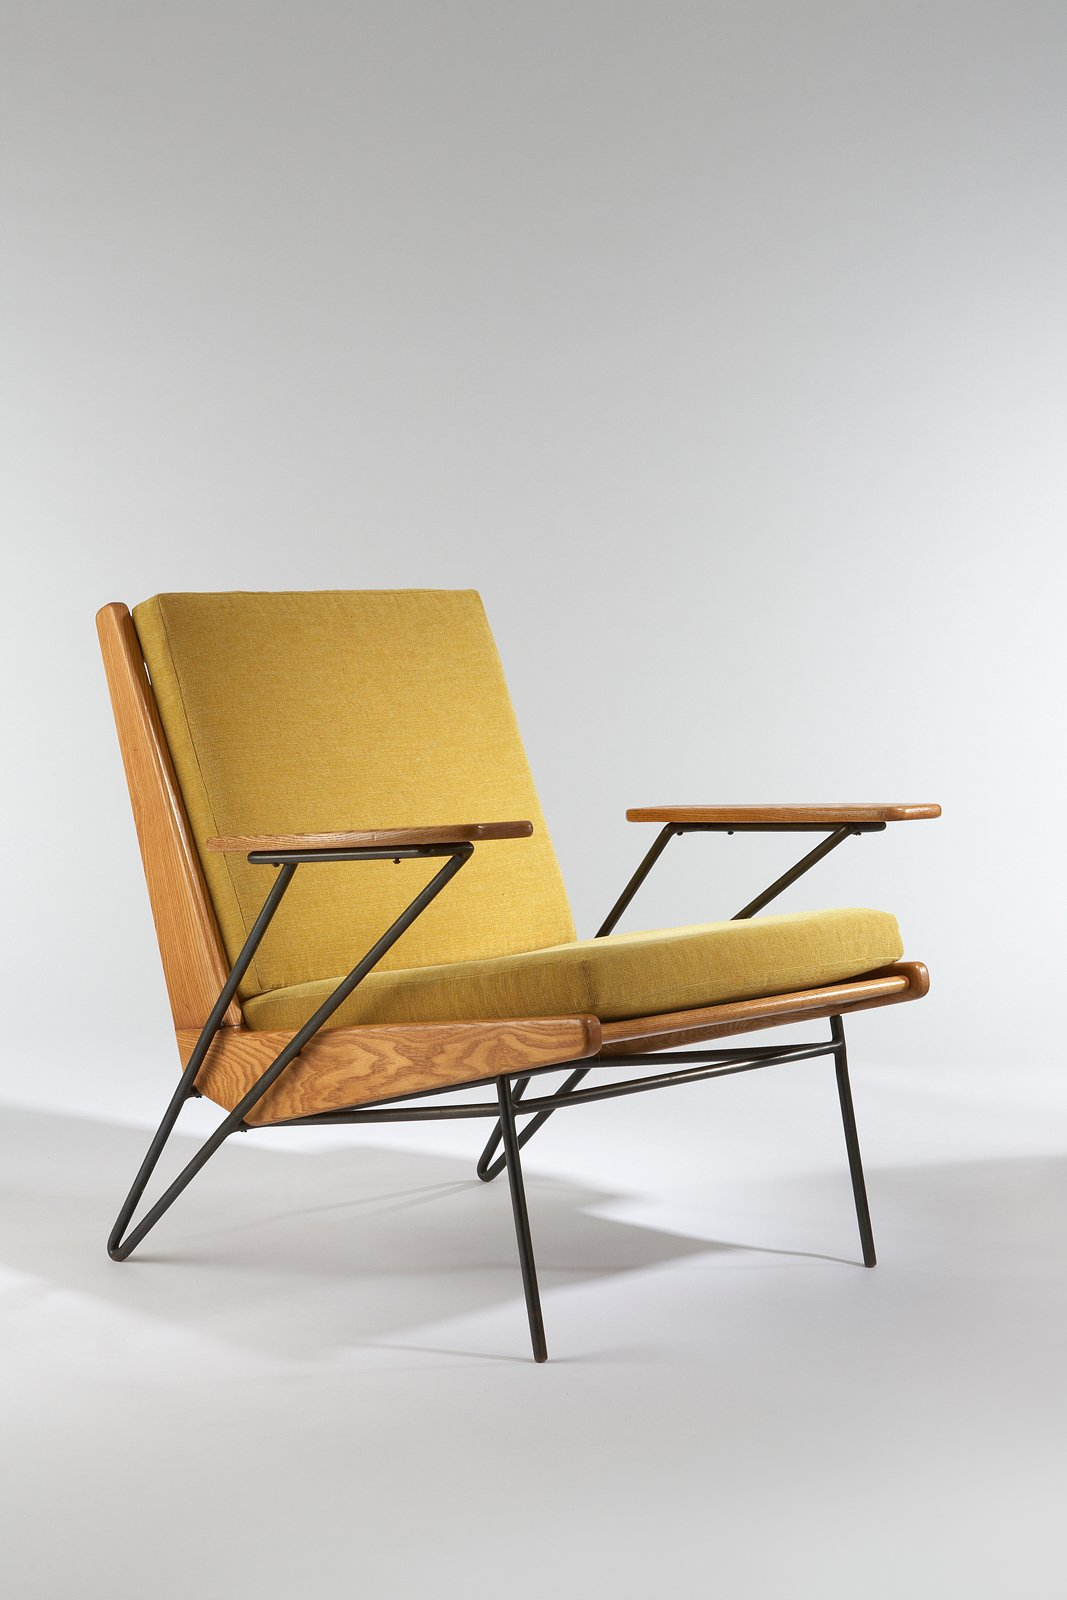 Armchair, 1953. Ash, black enameled metal, upholstered. By Pierre Guariche.  Photo 3 of 3 in 3 Tips for Mid-Century Modern Collectors